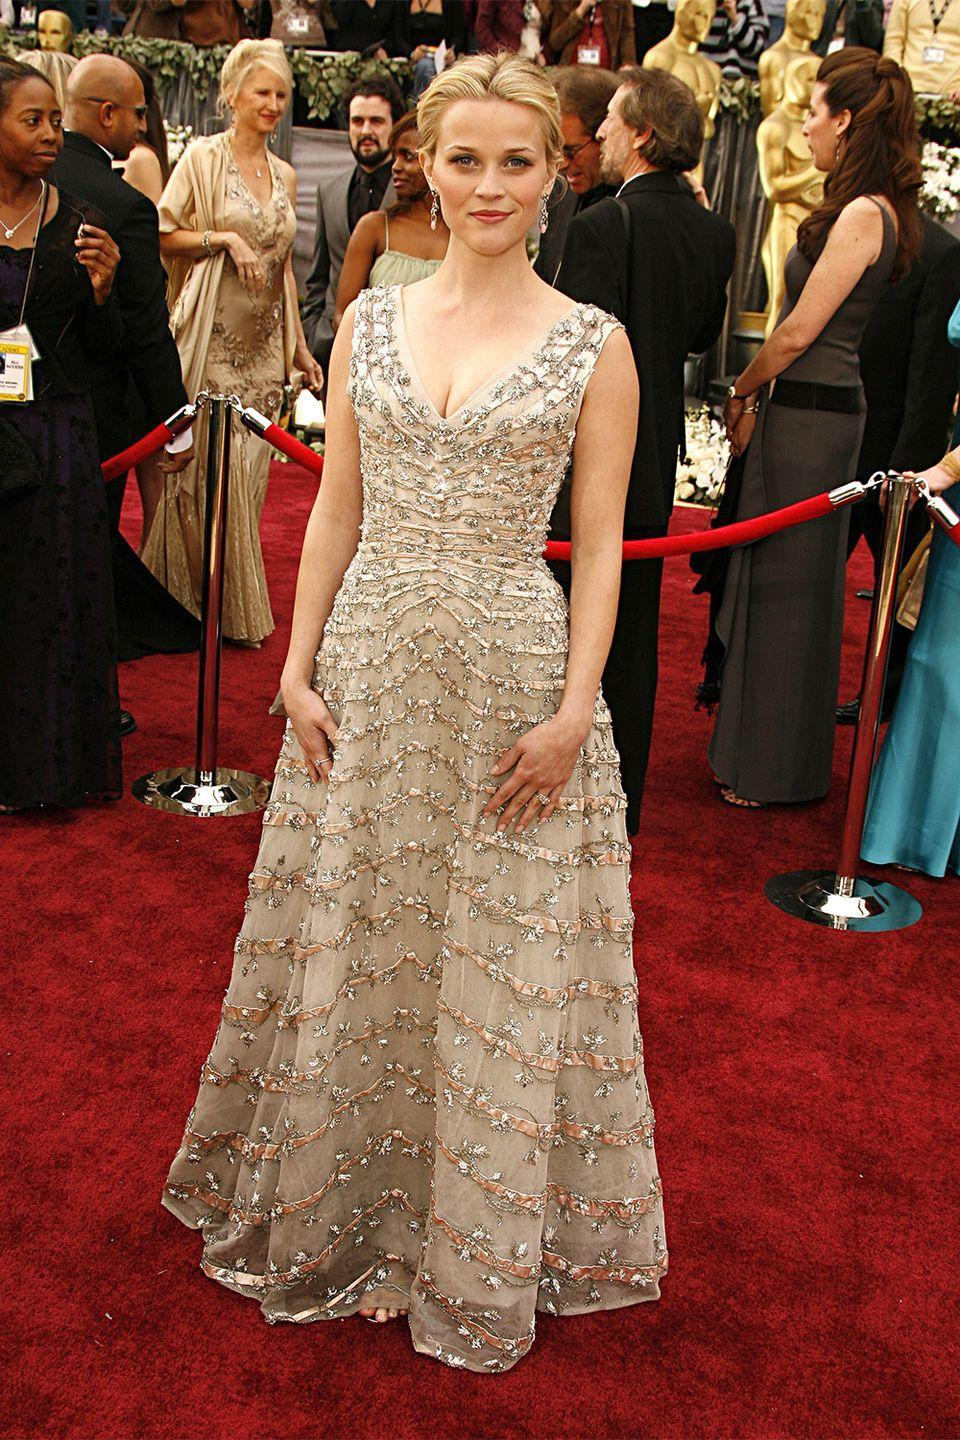 <p>The vintage route has always proven to be a sartorial success—like Reese Witherspoon in vintage Christian Dior when she took home the best actress award for <em>Walk the Line. </em></p>